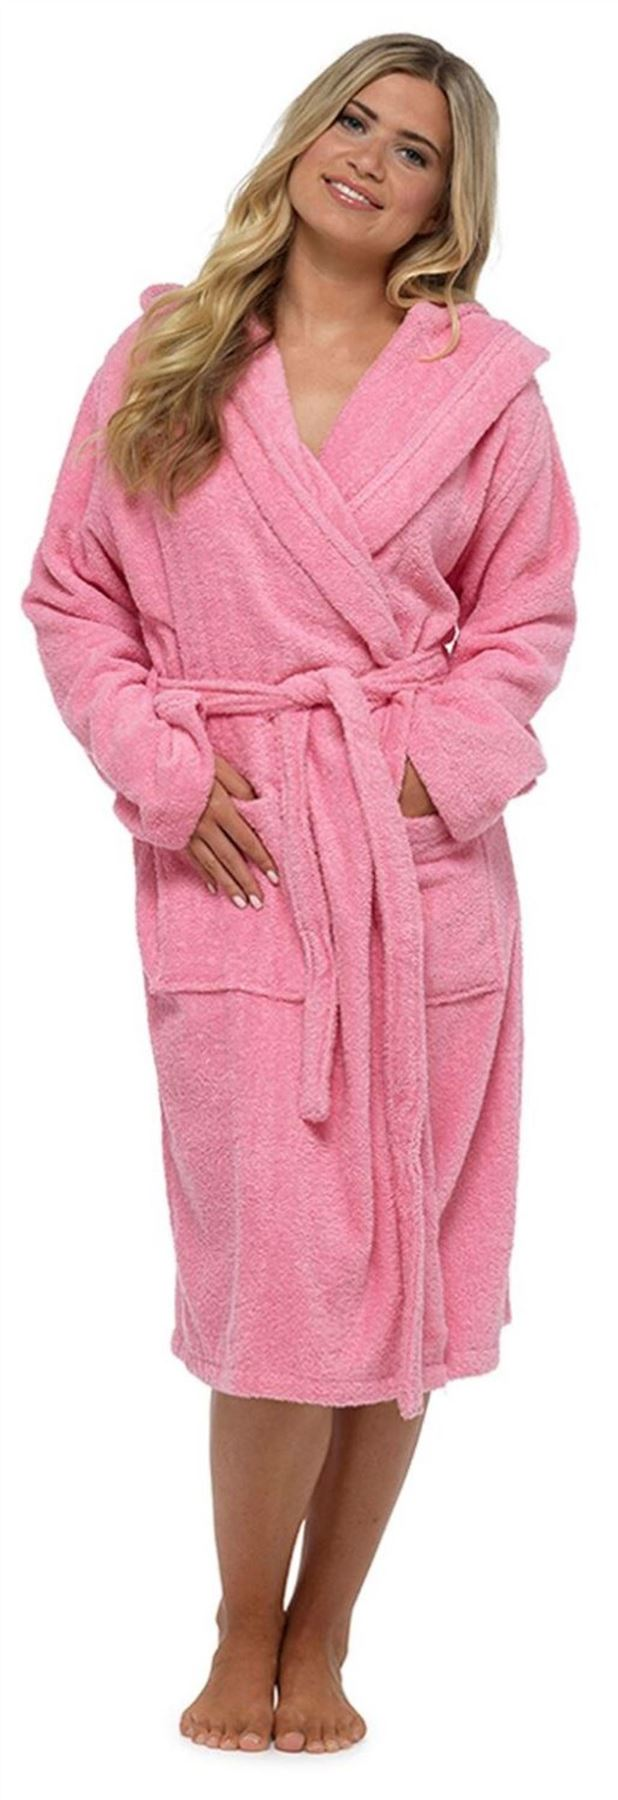 Internet-shop: bathrobes for women and other goods